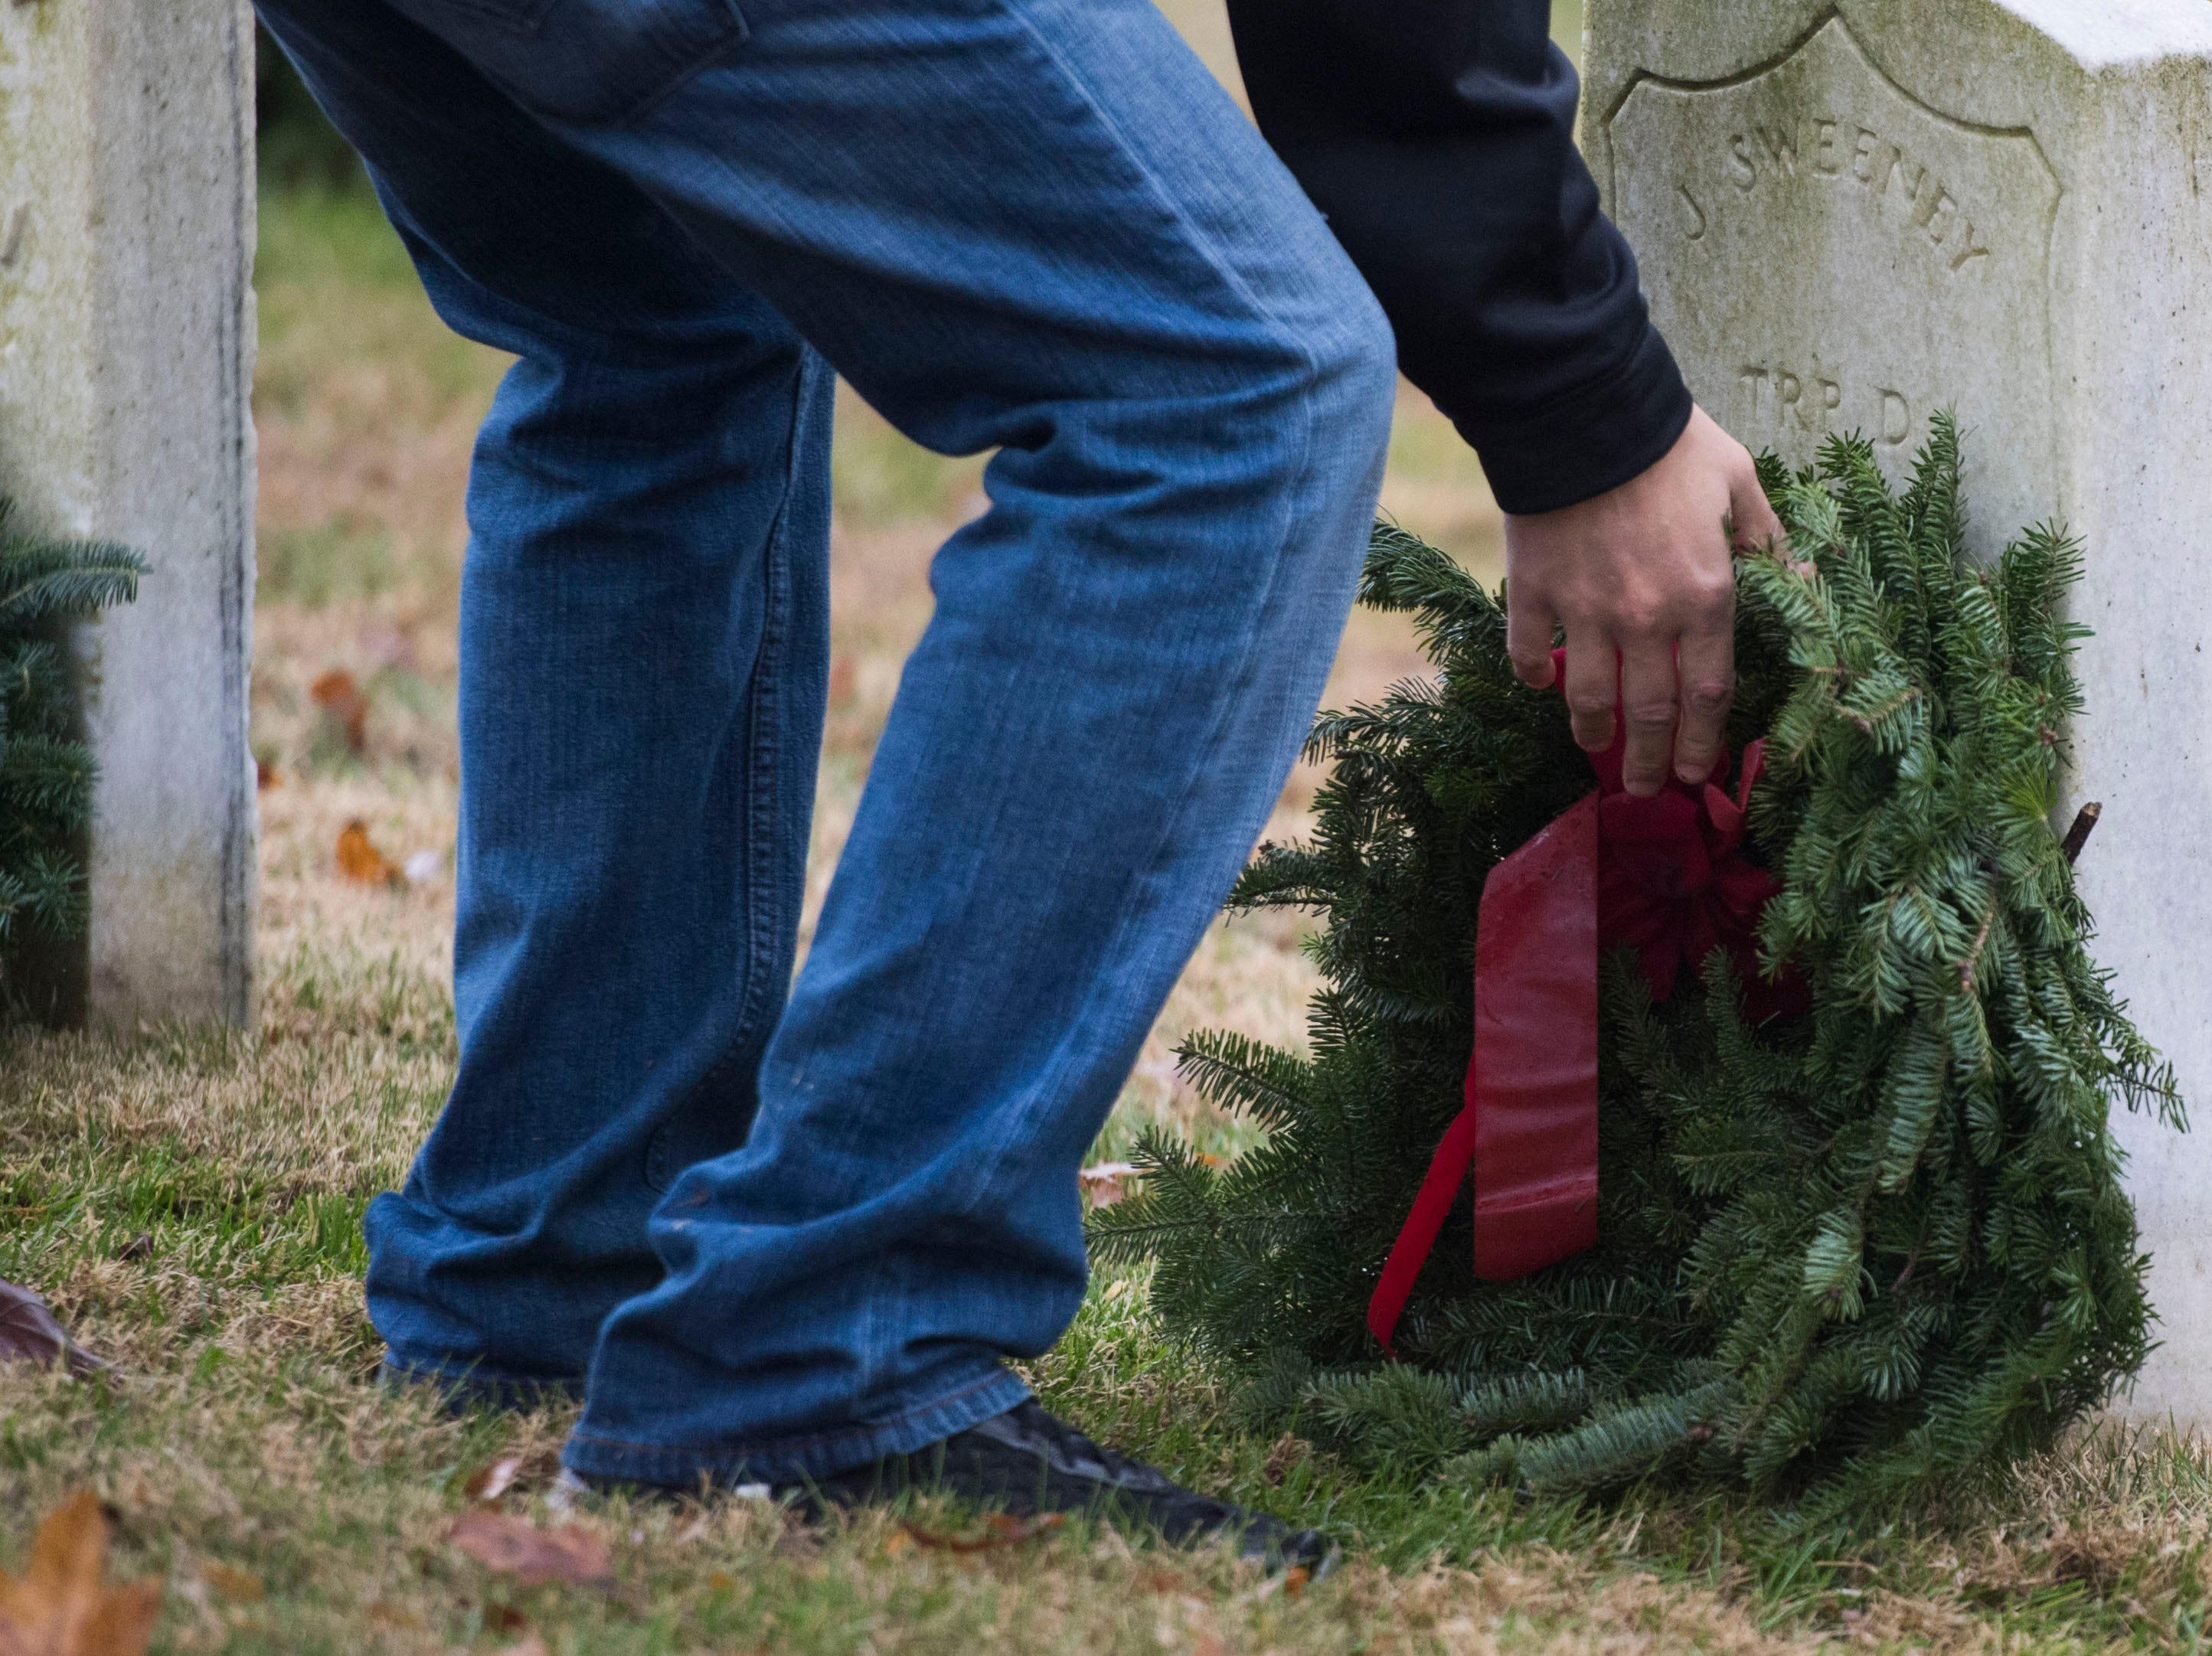 Wreaths are placed on headstones during a Wreaths Across America ceremony at Knoxville National Cemetery north of downtown Knoxville Saturday, Dec. 15, 2018. Evergreen wreaths were placed on veteran headstones.